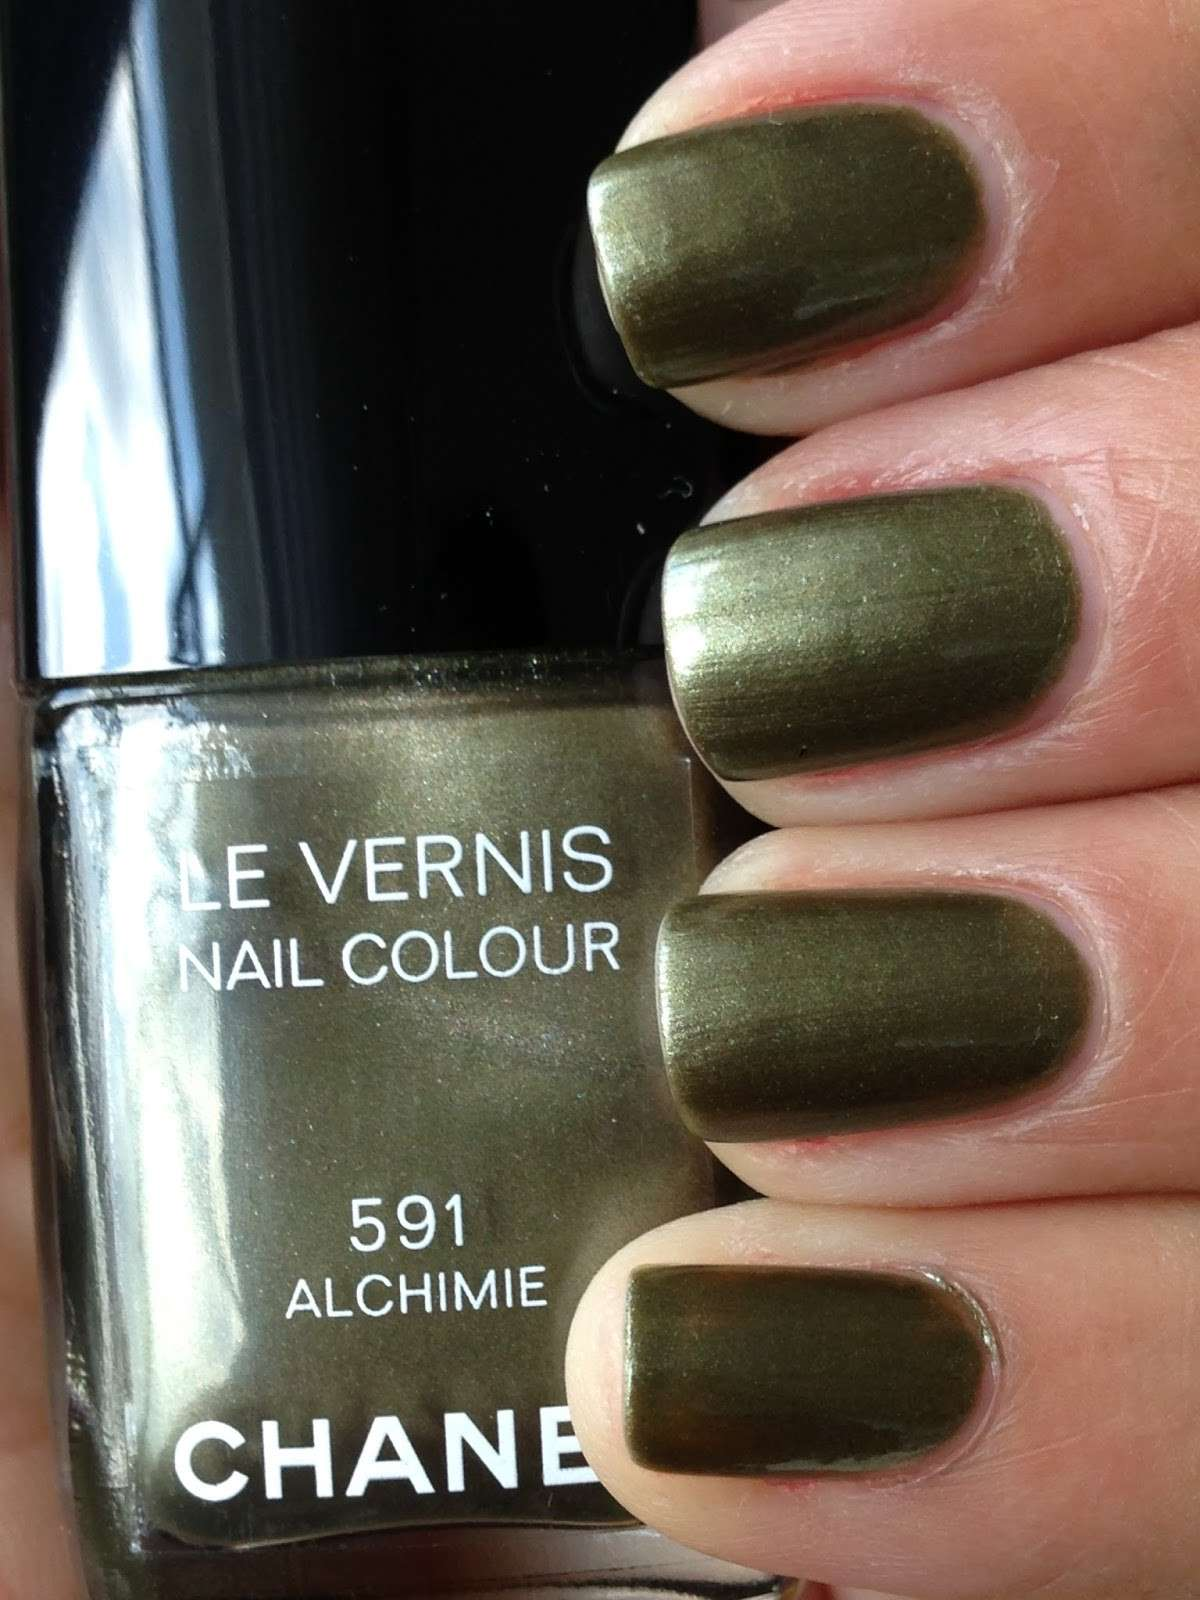 Smalto Chanel verde bosco